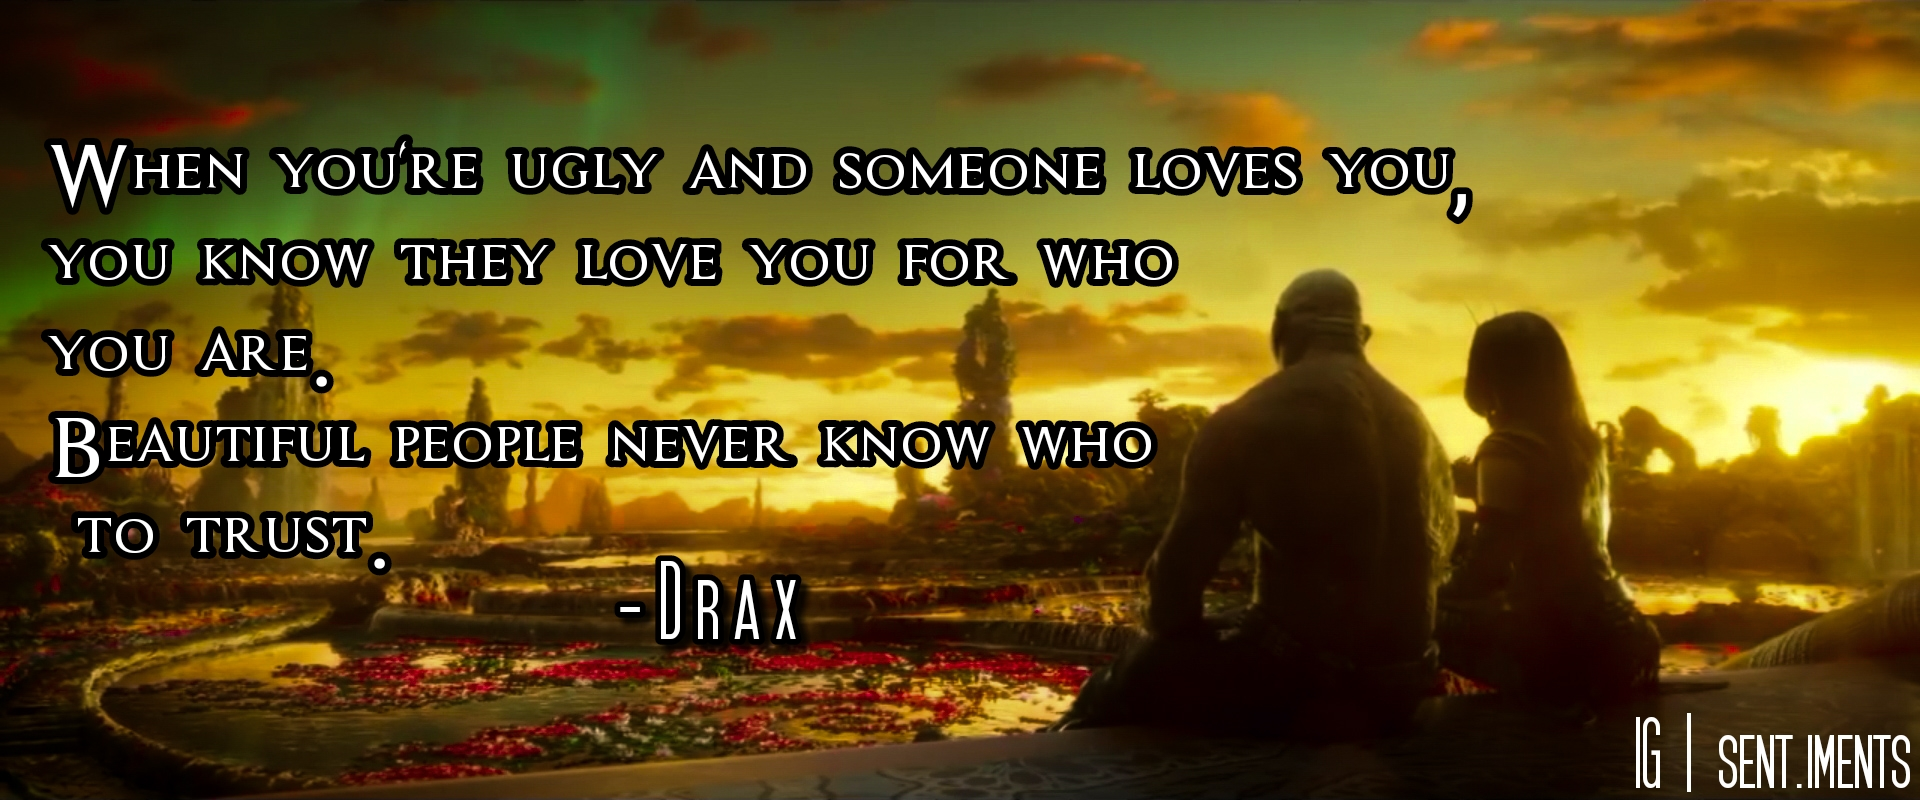 """When you're ugly and someone loves you, you know they love you for who you are. Beautiful people never know who to trust."" By Drax the Destroyer [1920 X 800]"